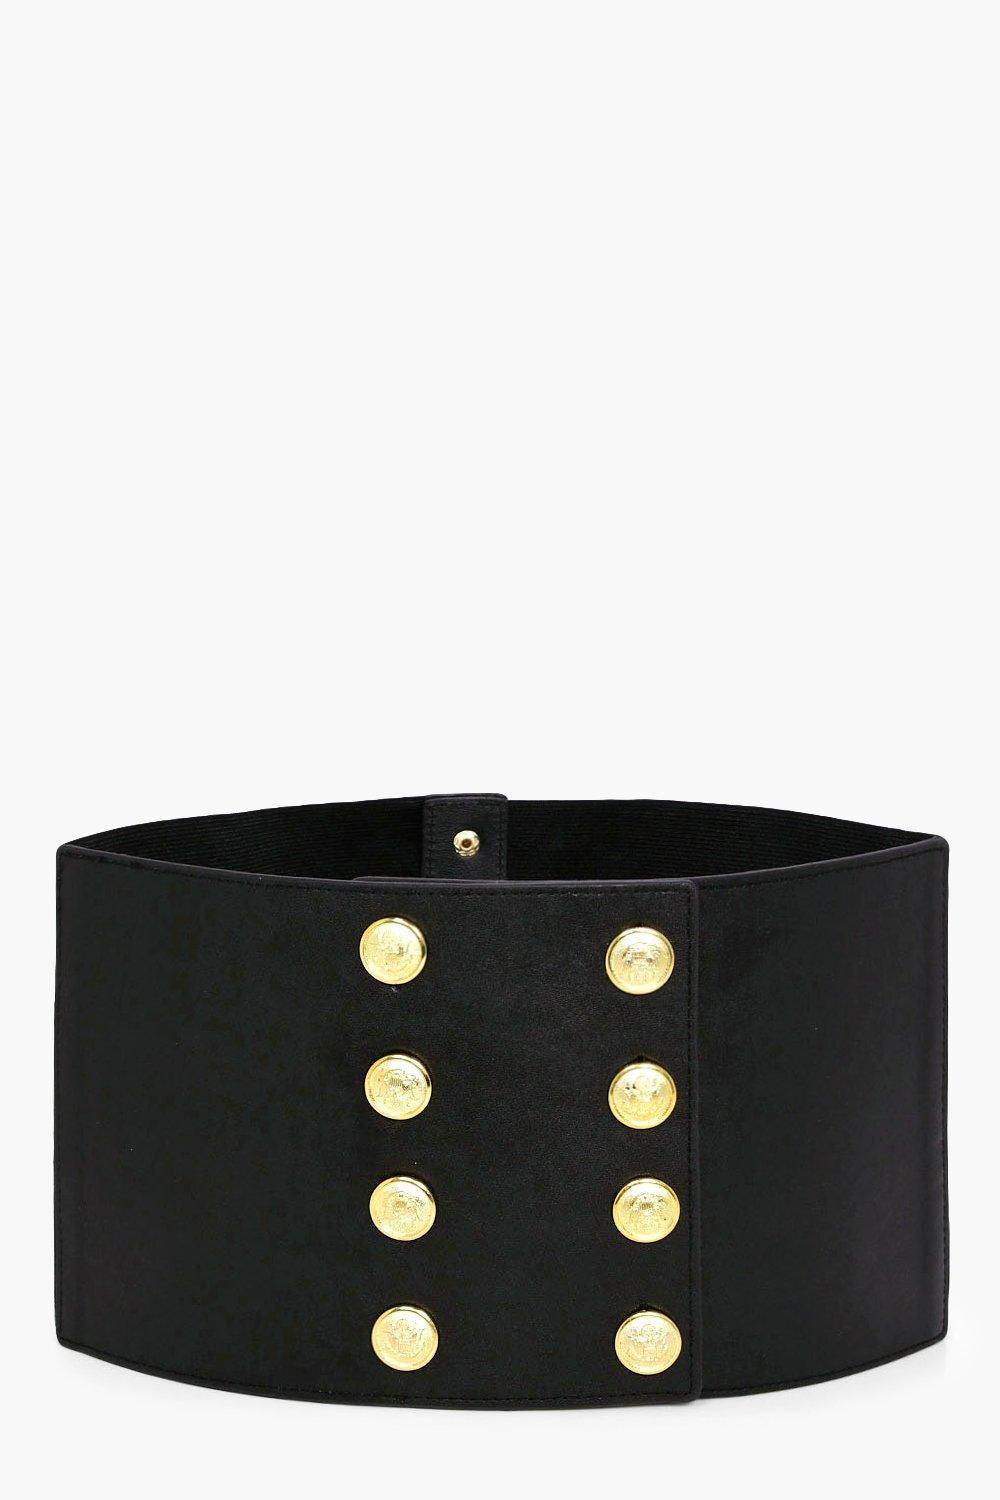 Military Button Waist Belt - black - Abigail Milit